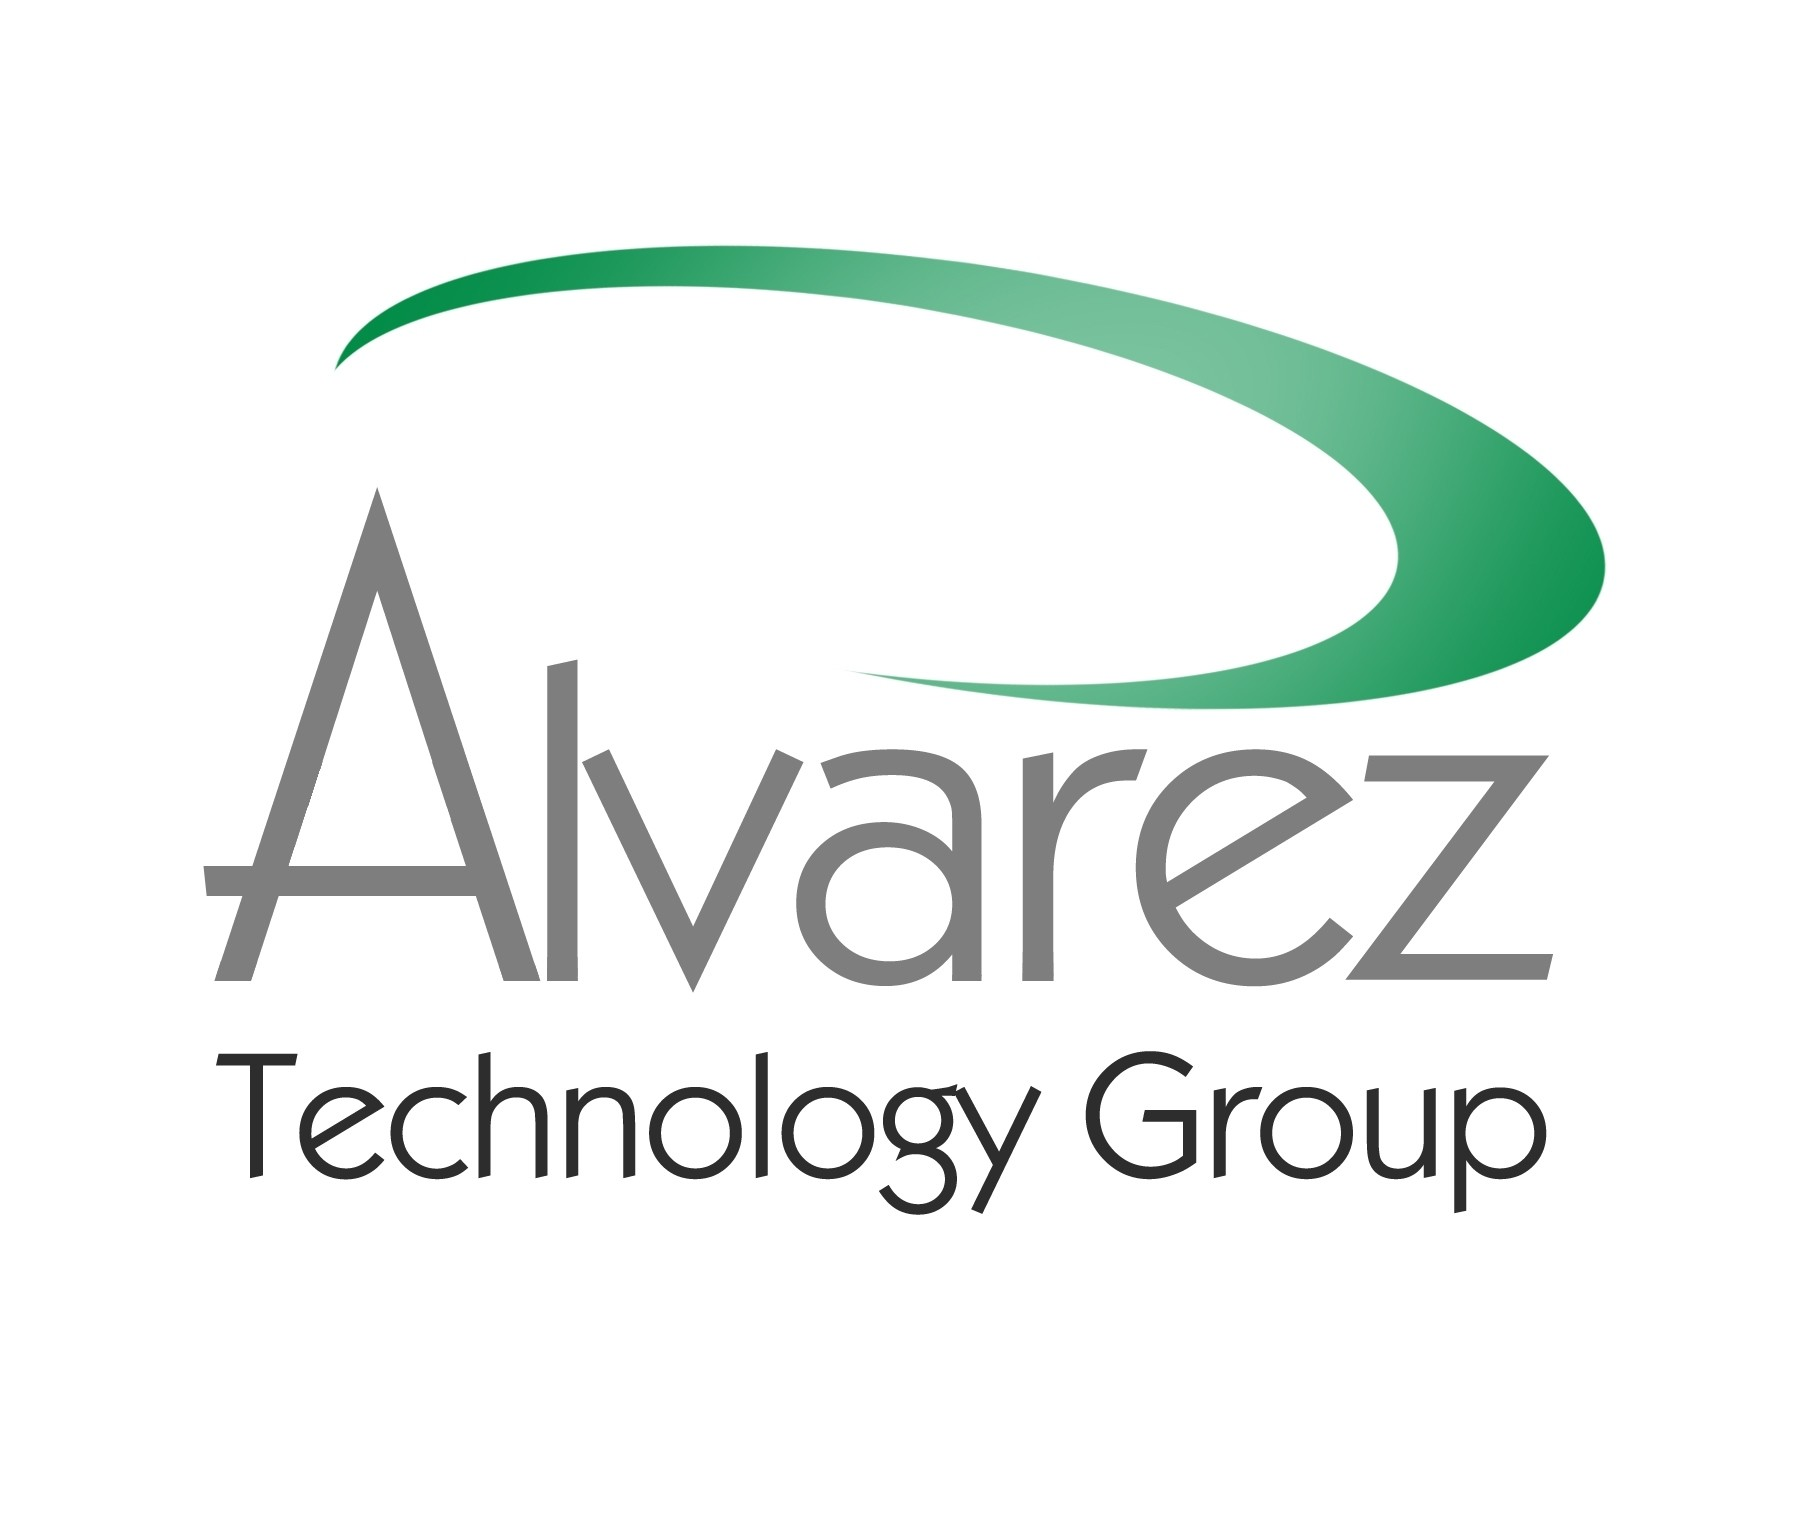 Alvarez Technology Group IoT Summit